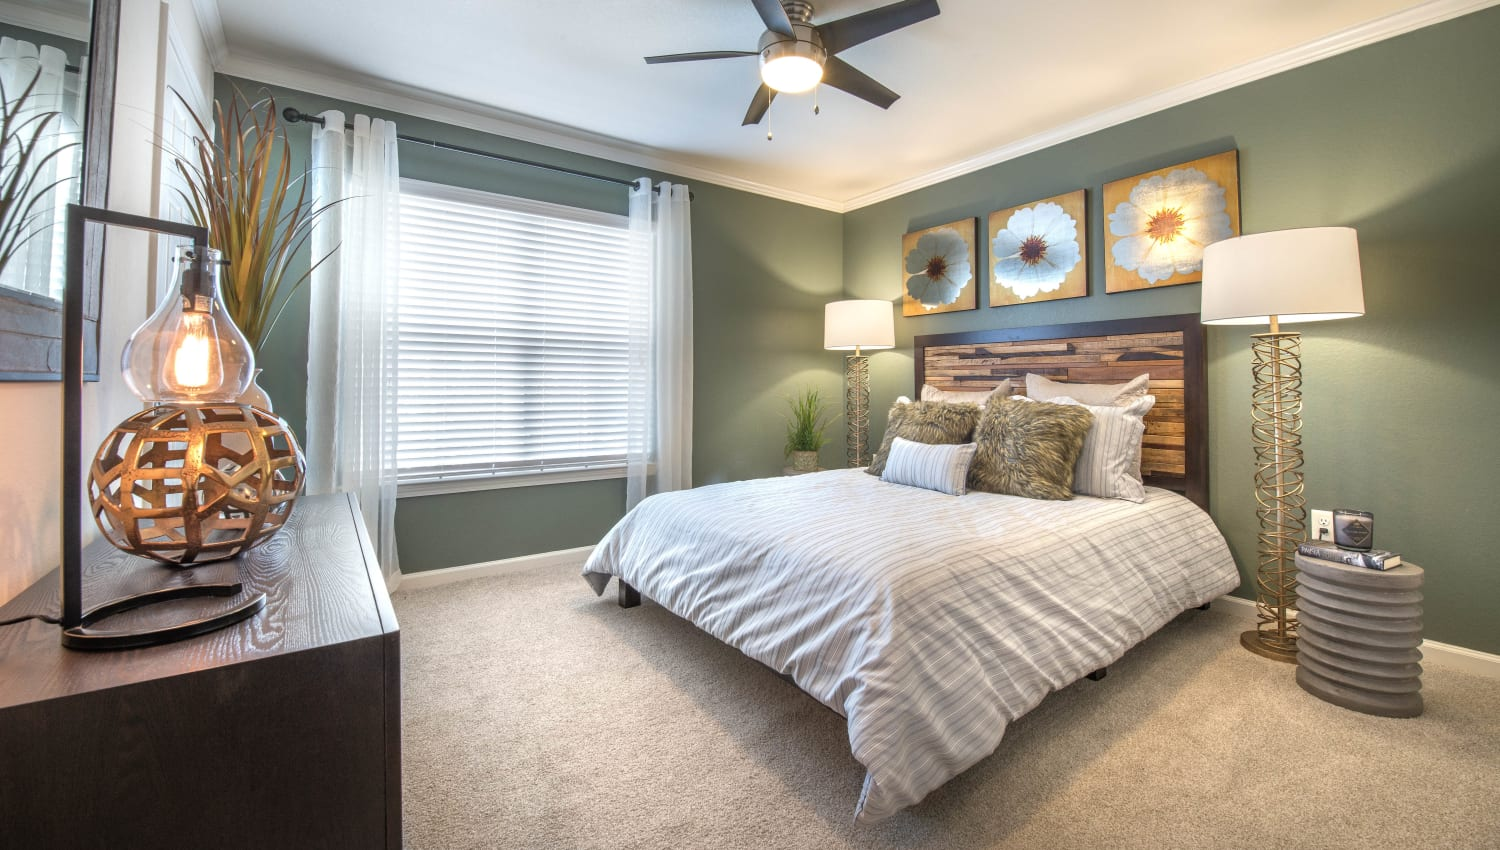 Bay windows and plush carpeting in a model home's master bedroom at Olympus Hillwood in Murfreesboro, Tennessee